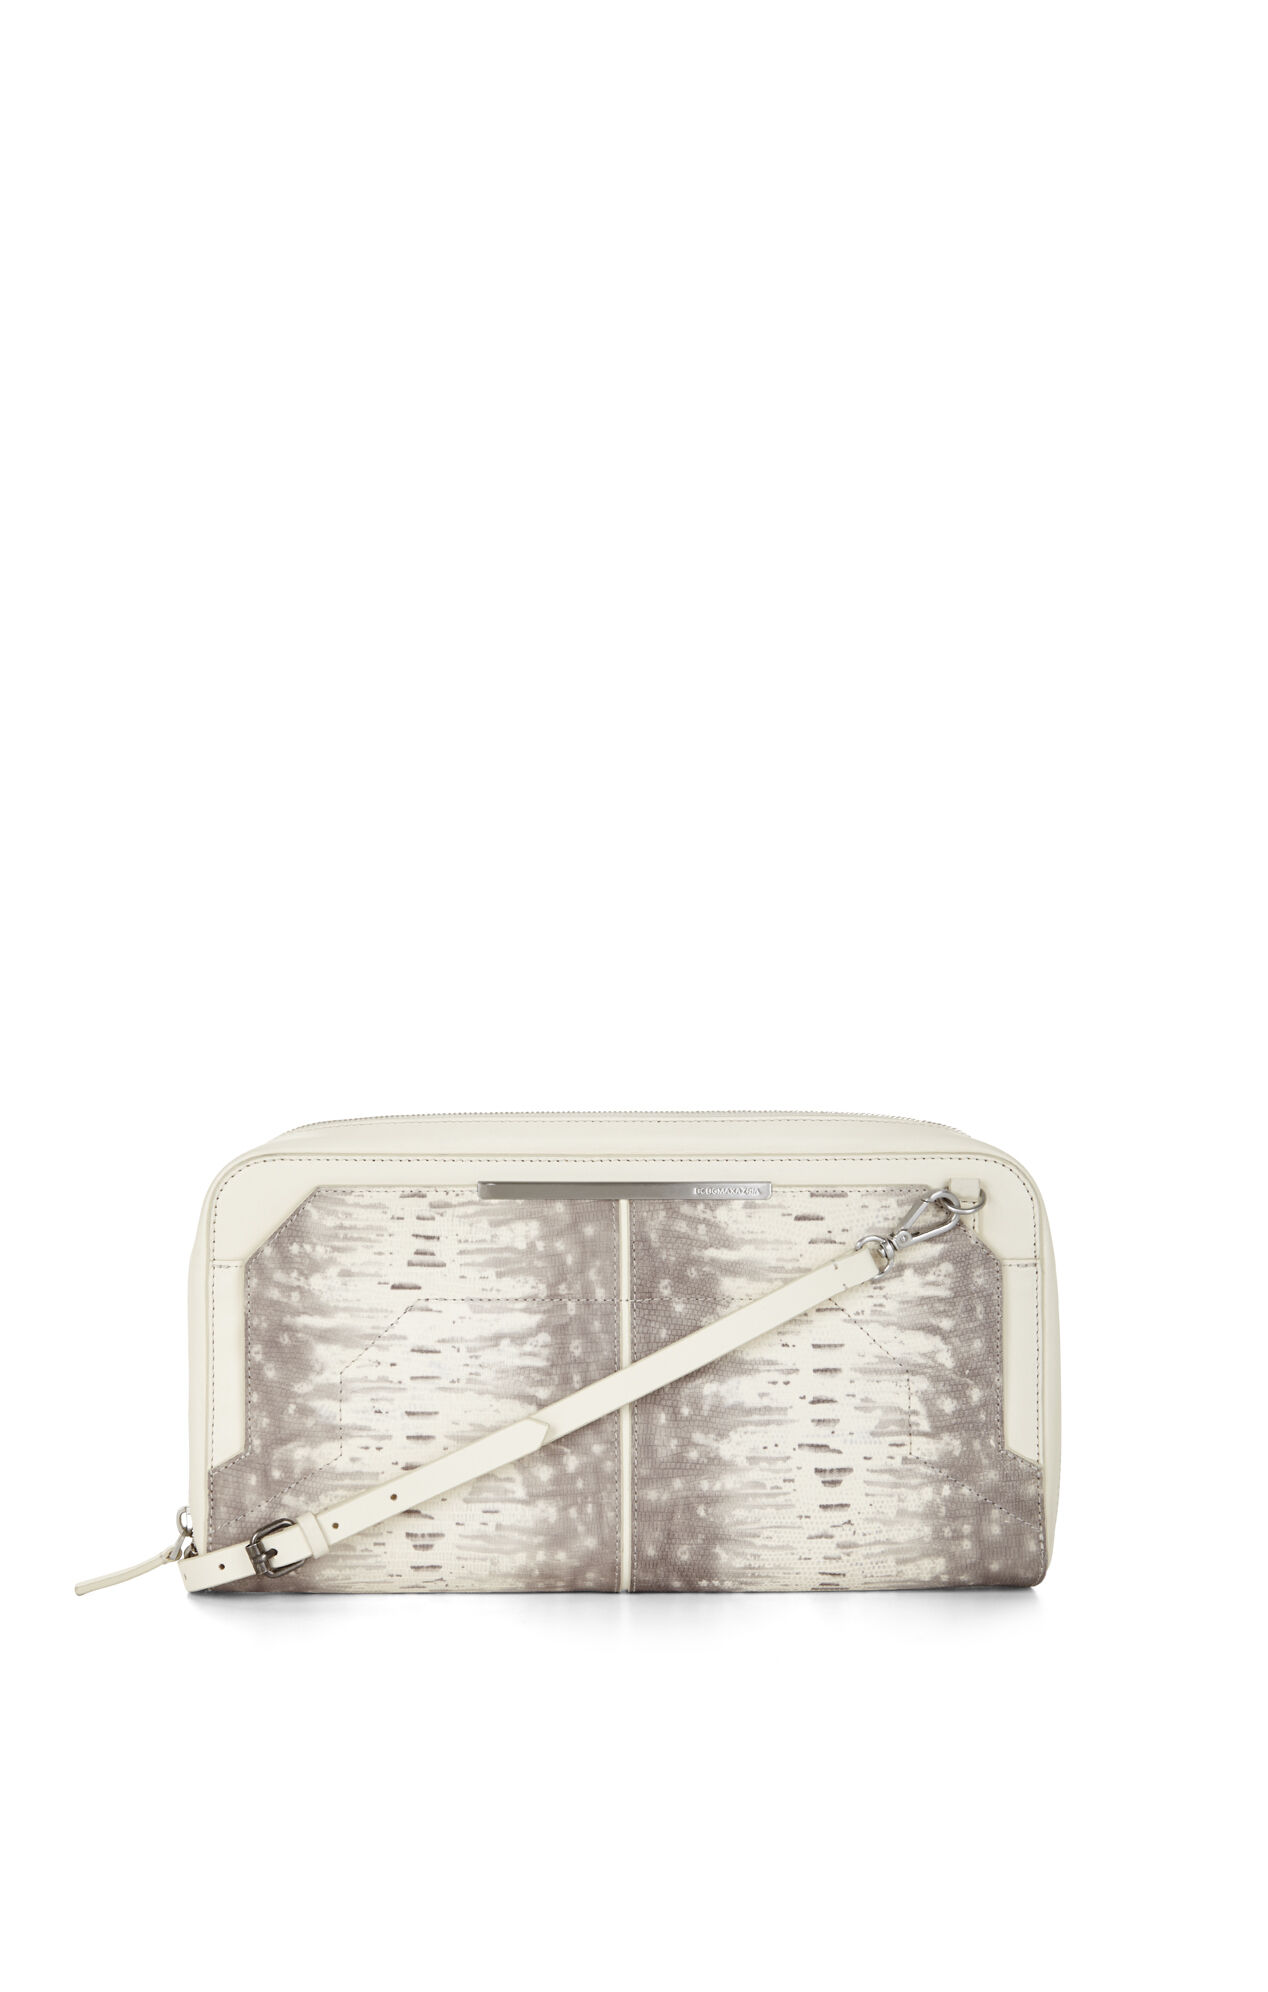 Runway Lizard-Embossed Leather Clutch